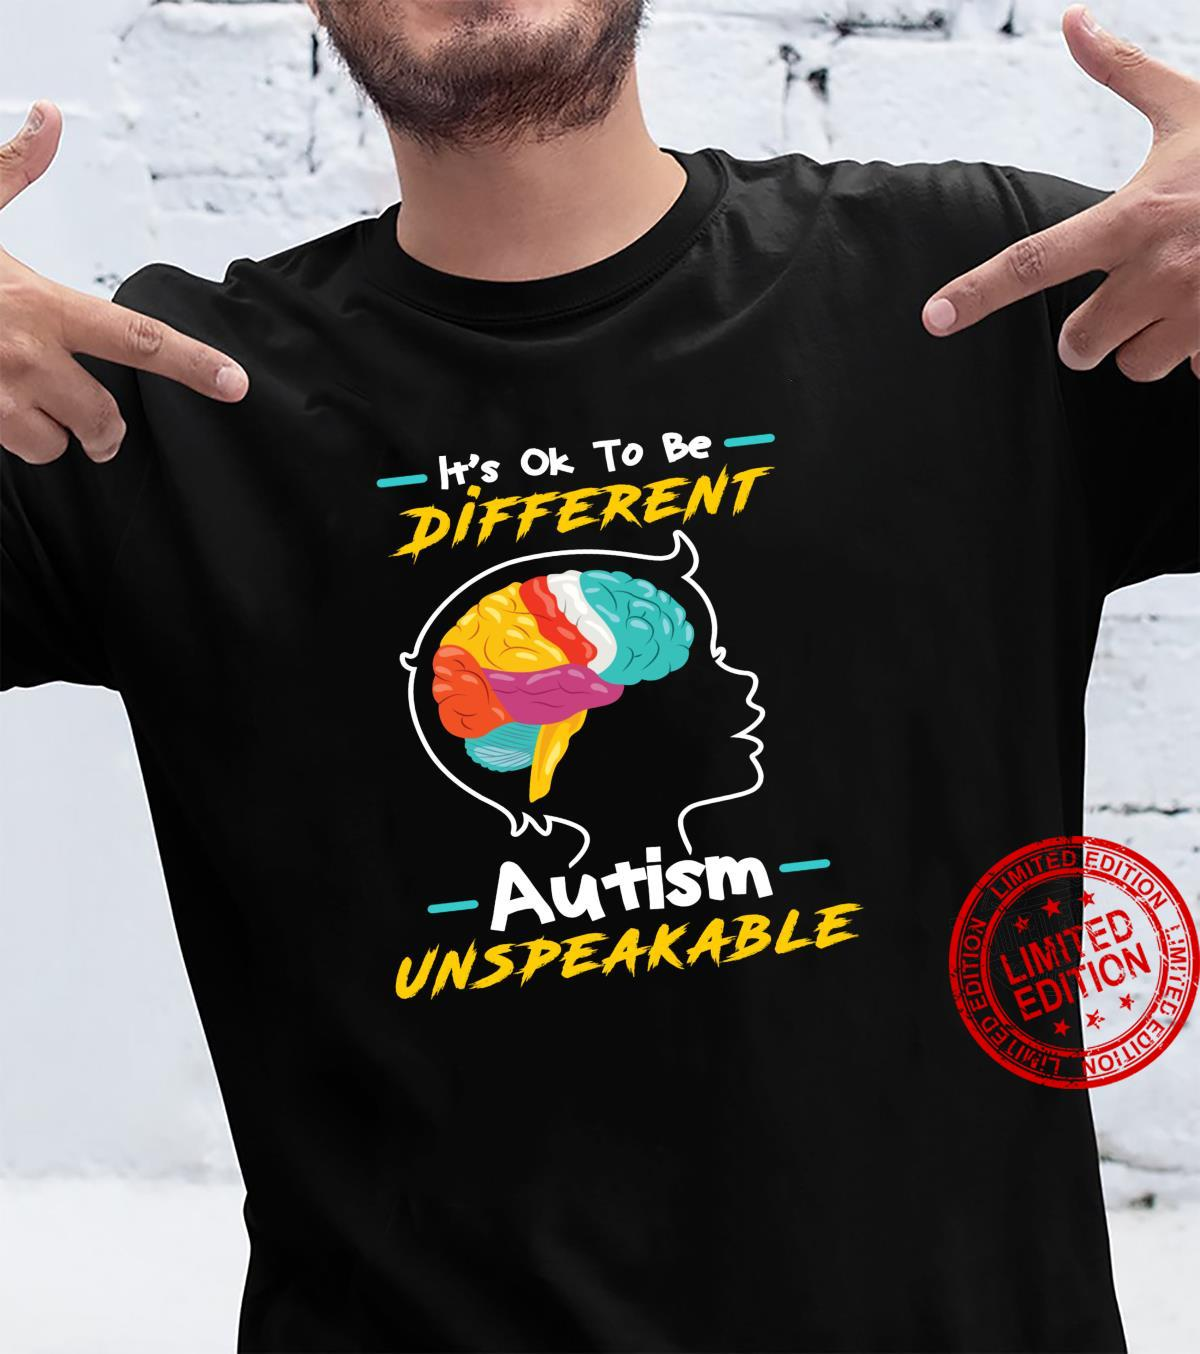 It's Okay To Be Different AutismUnspeakable Shirt